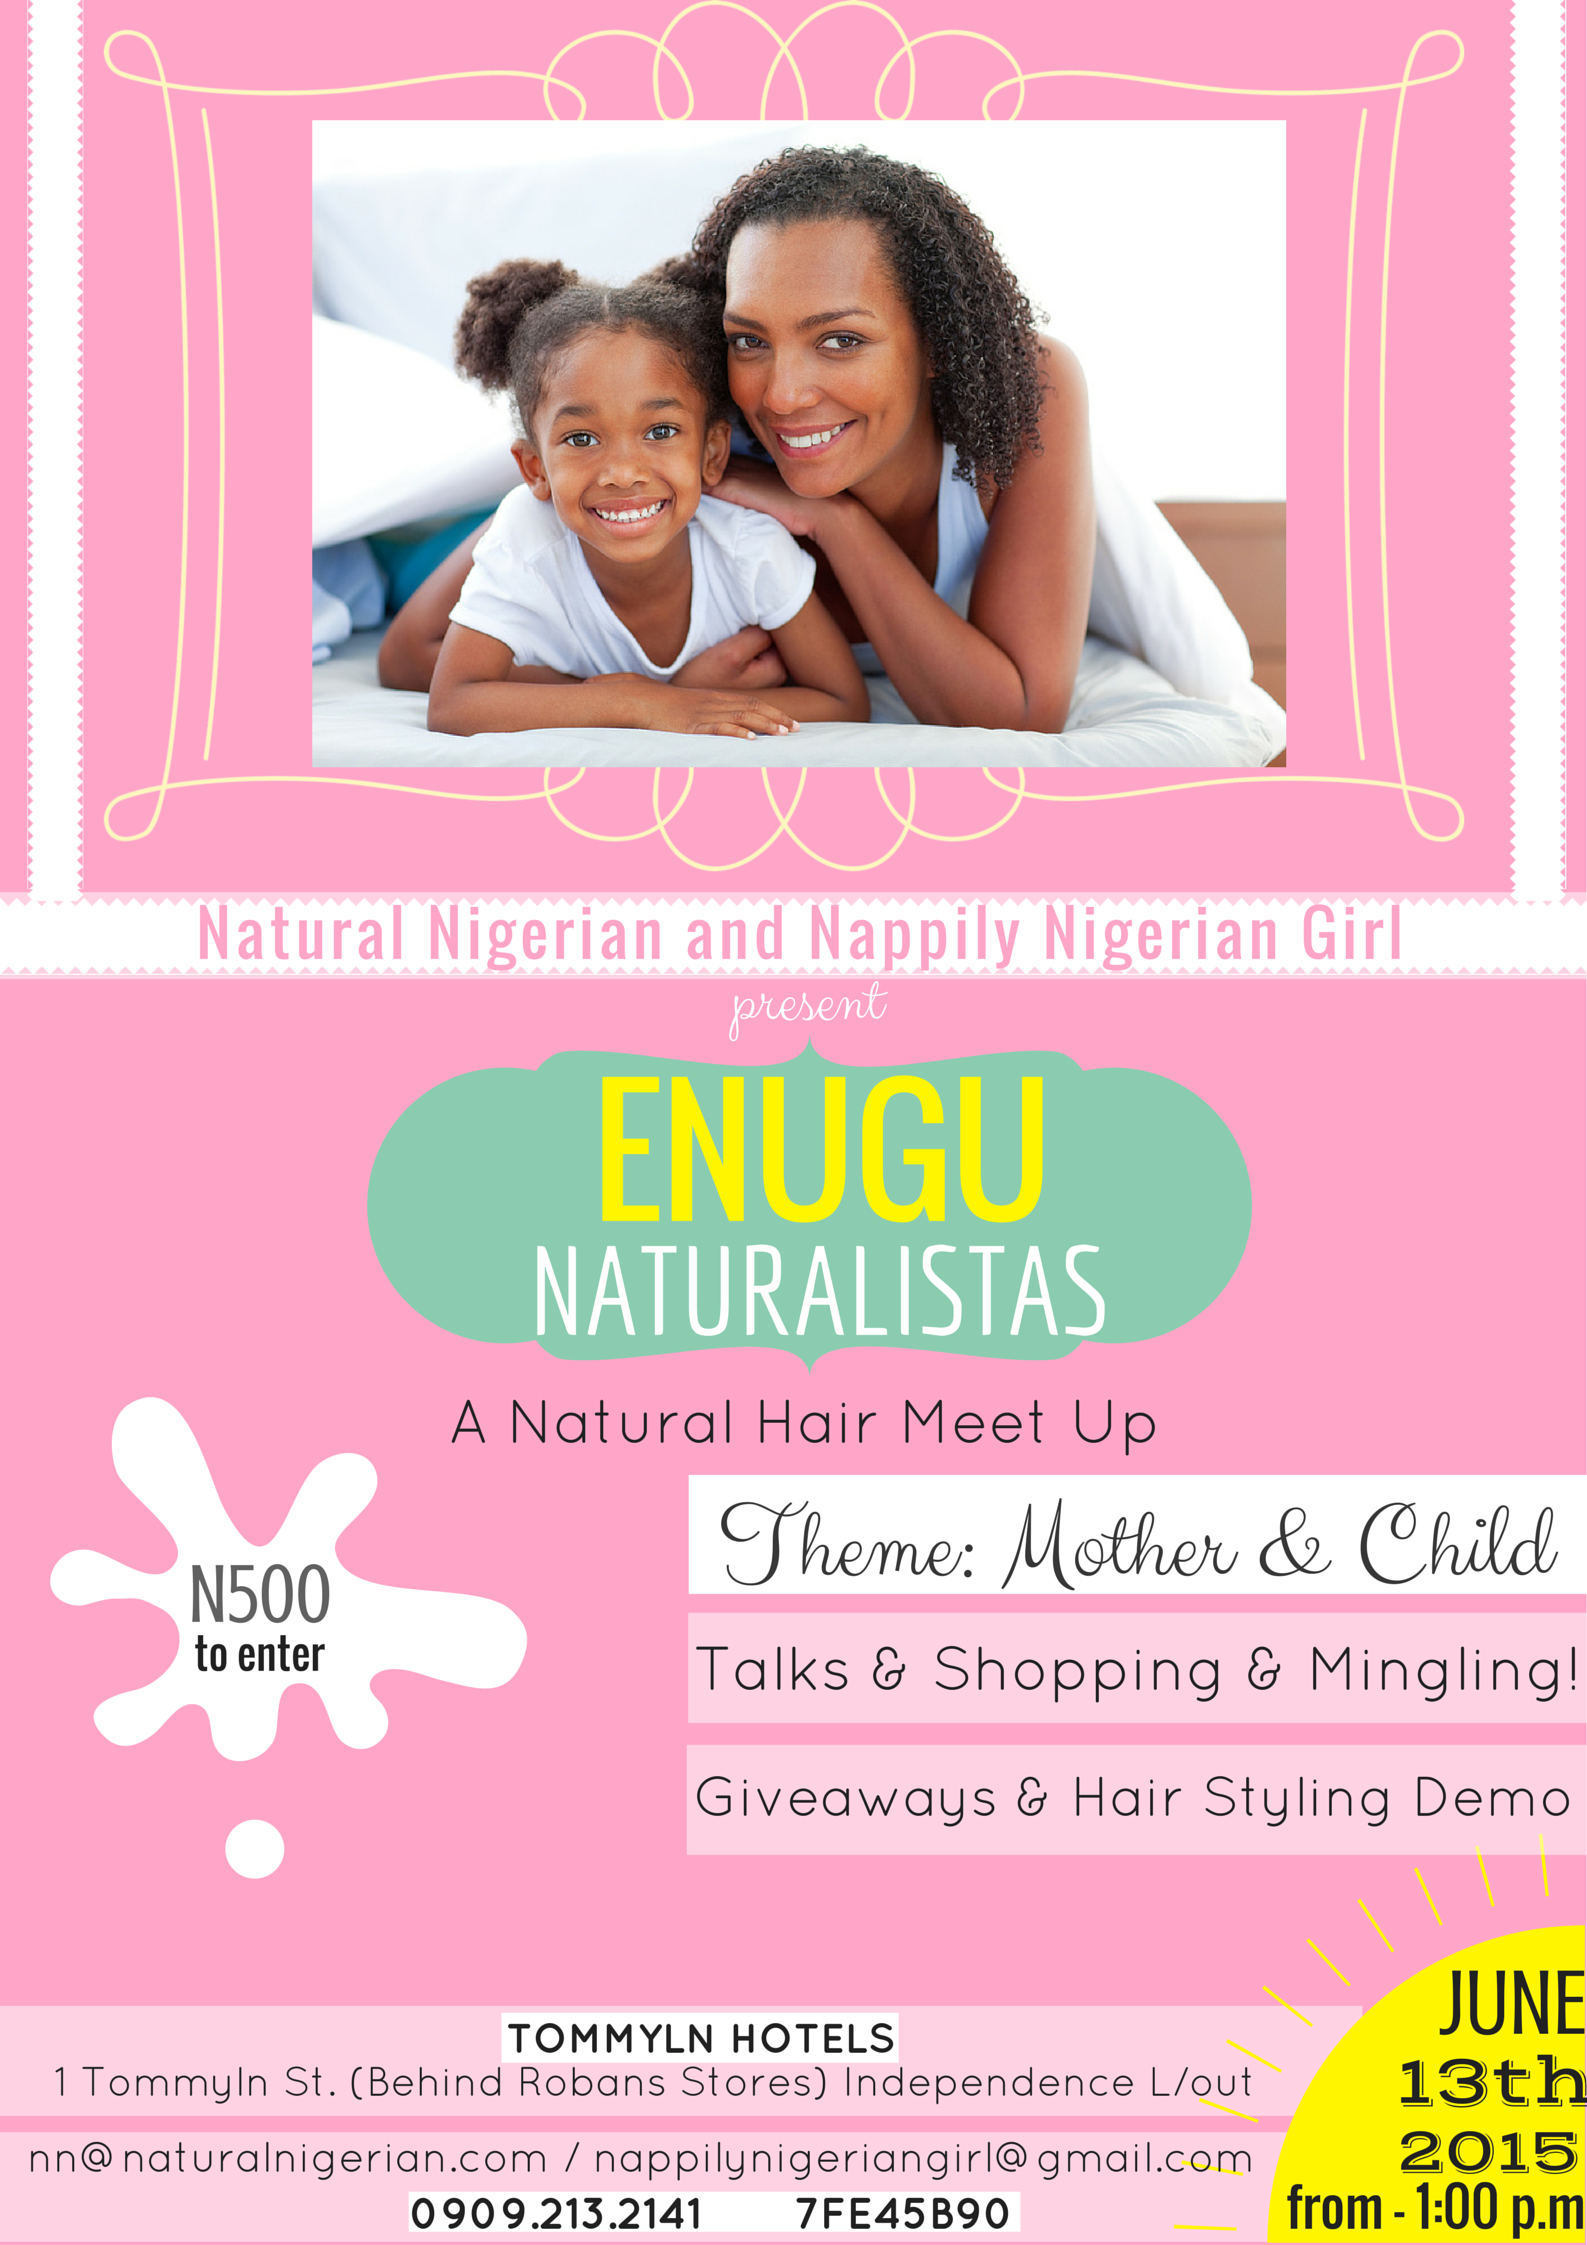 Natural Hair Meet Up Enugu  Nigeria